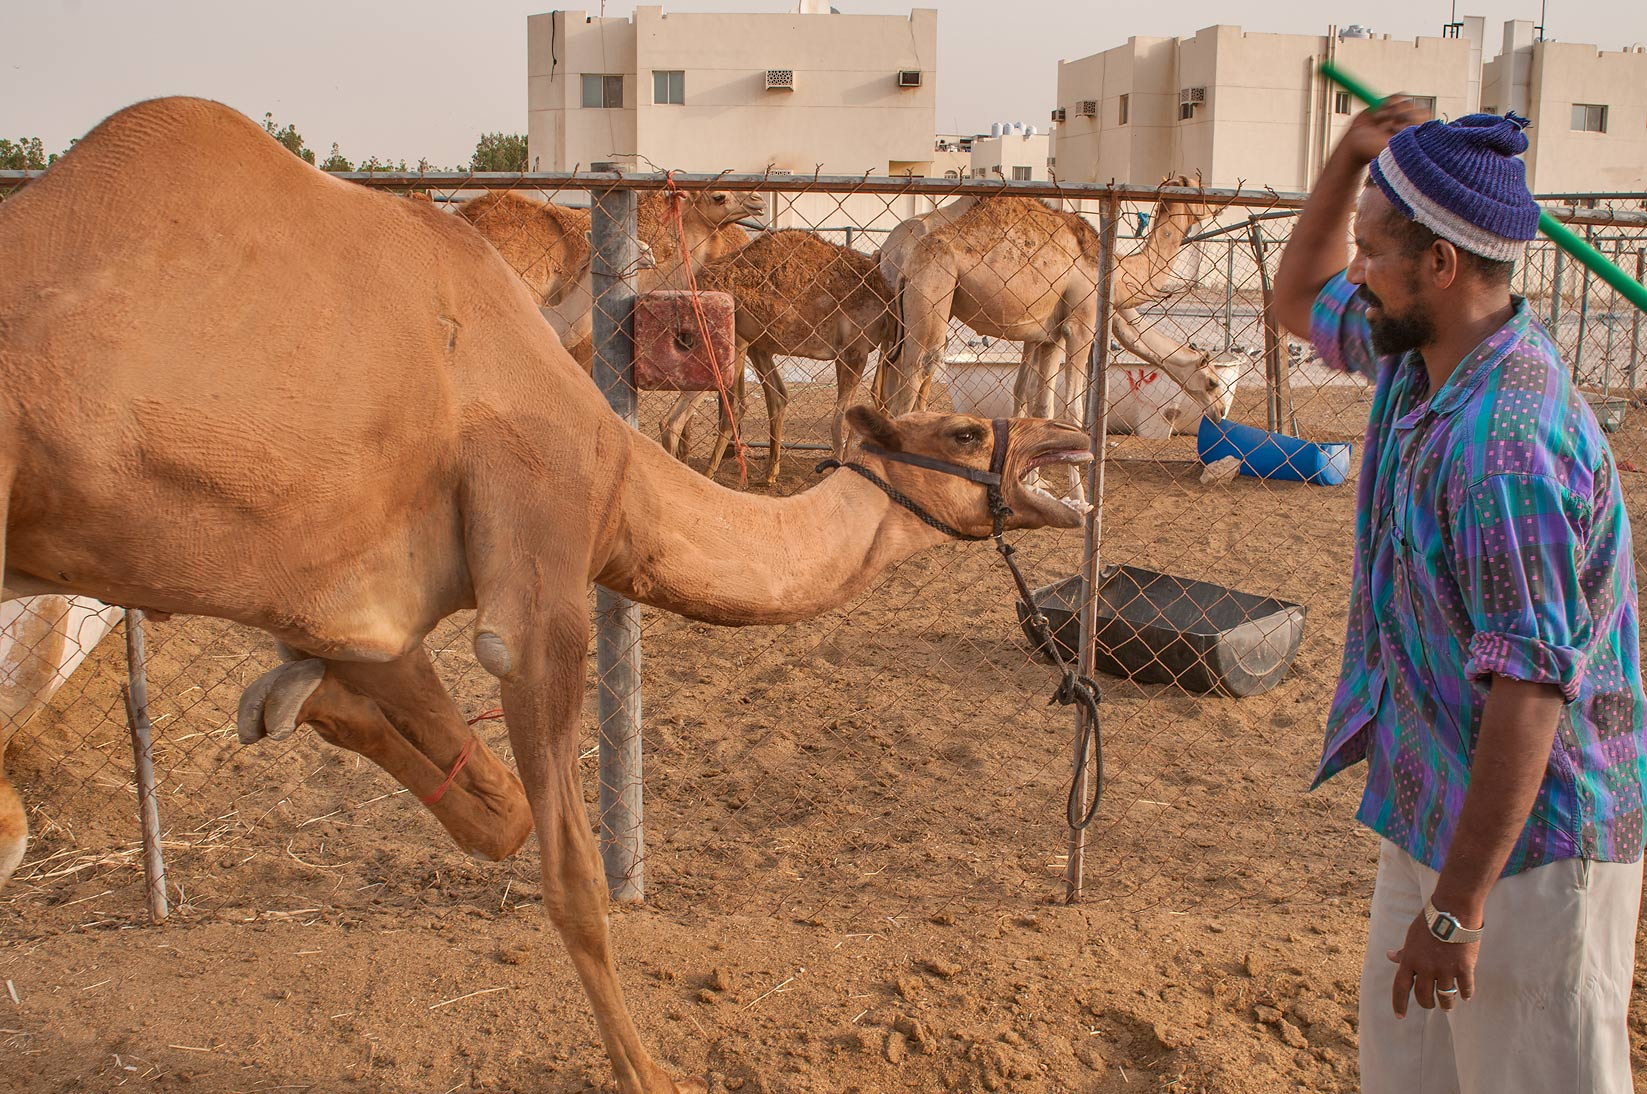 Taming stubborn camel by stick in Livestock Market, Wholesale Markets area. Doha, Qatar